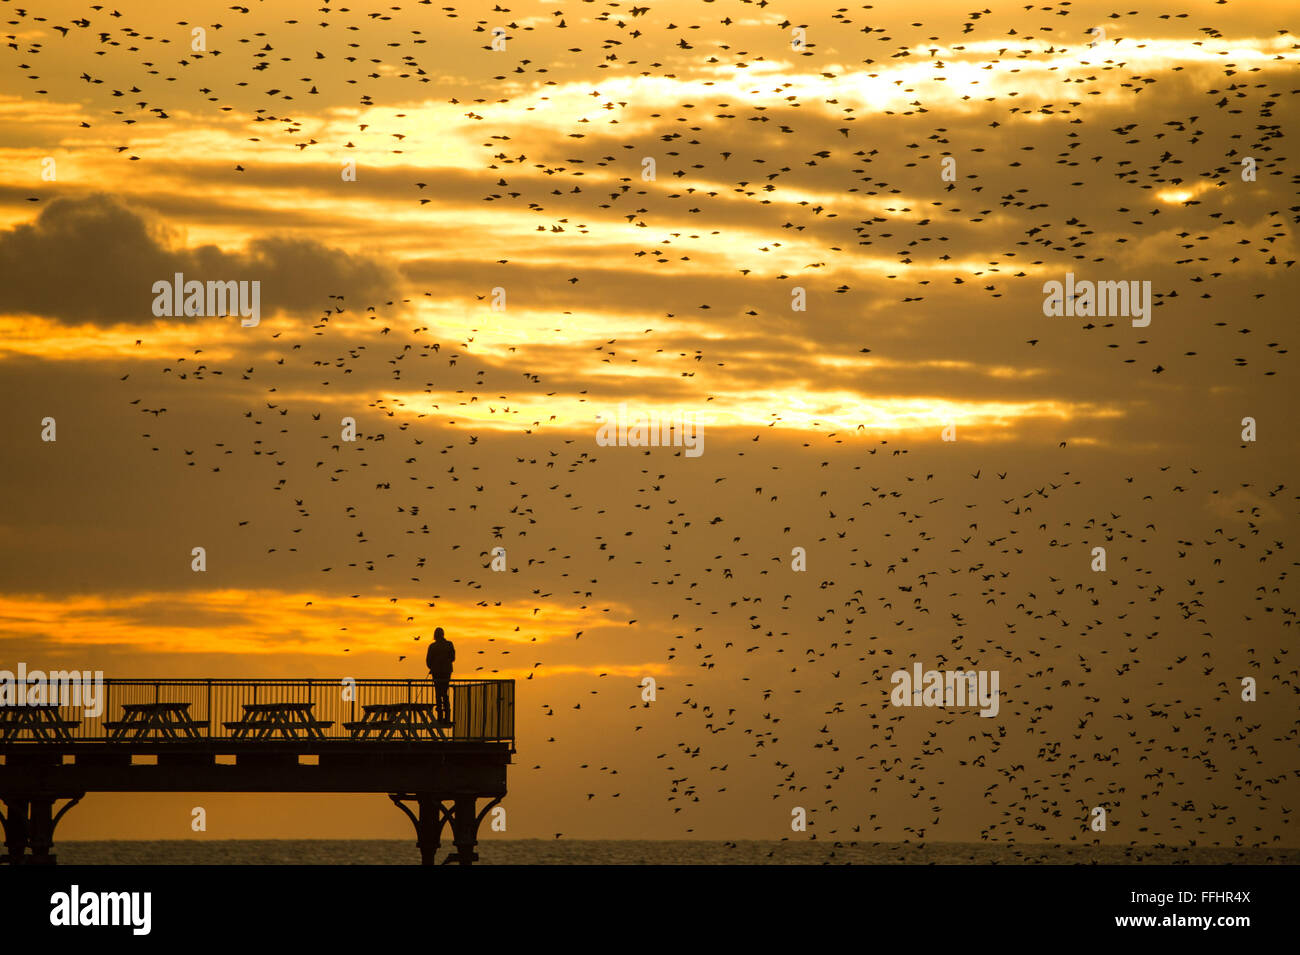 Aberystwyth, Wales, UK. 14th Feb 2016  UK weather: Birdwatchers and photographers are surrounded by a flock of thousands Stock Photo